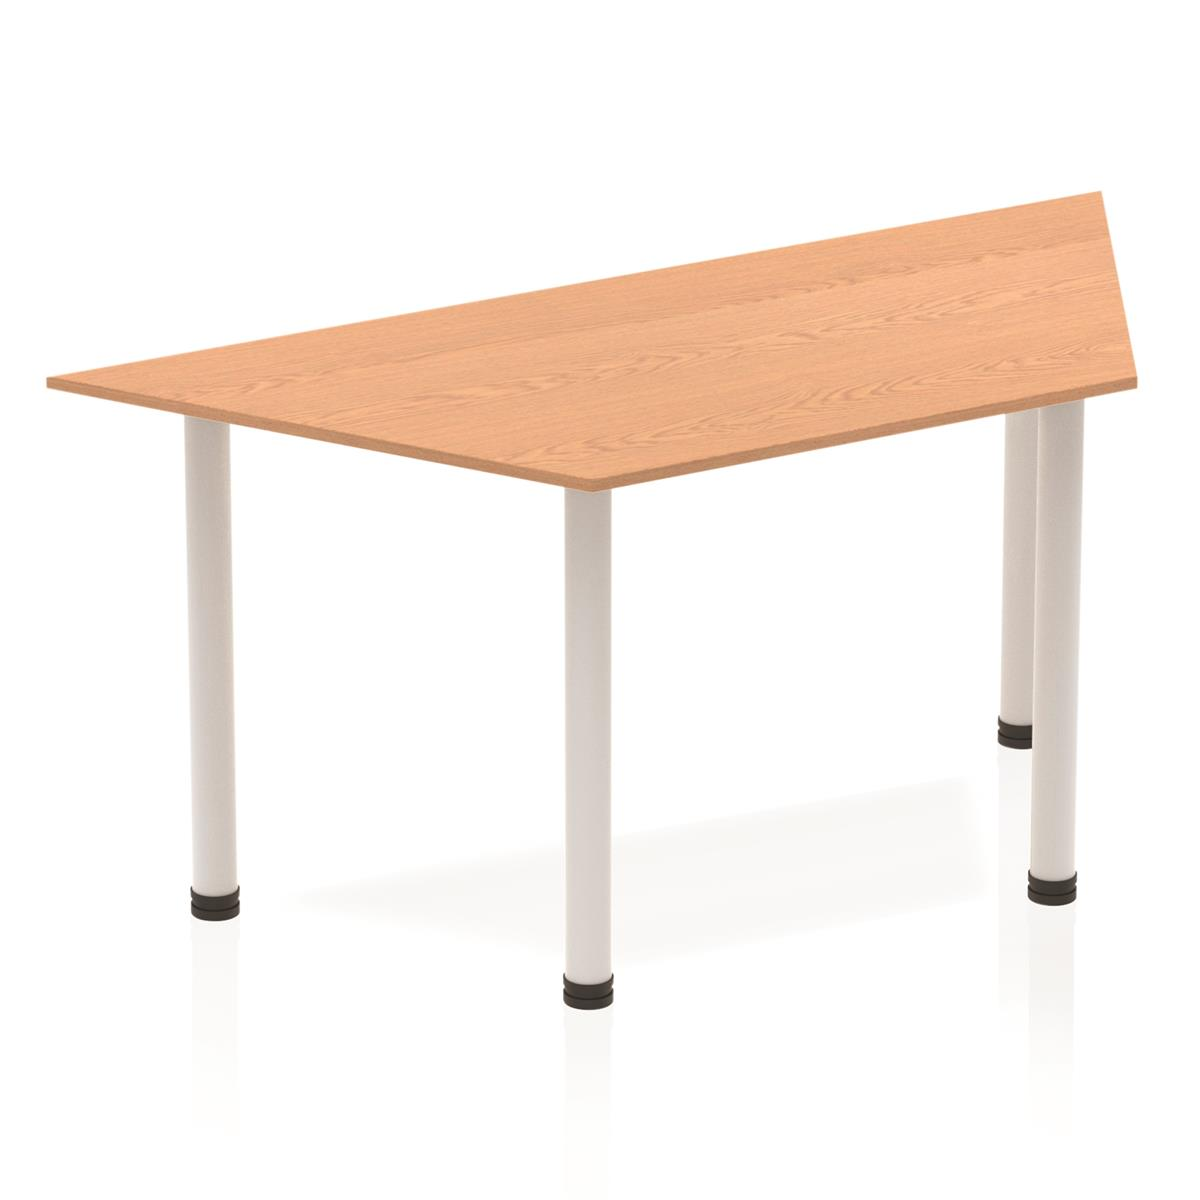 Image for Sonix Trapezium Table Post Leg 1600mm Oak